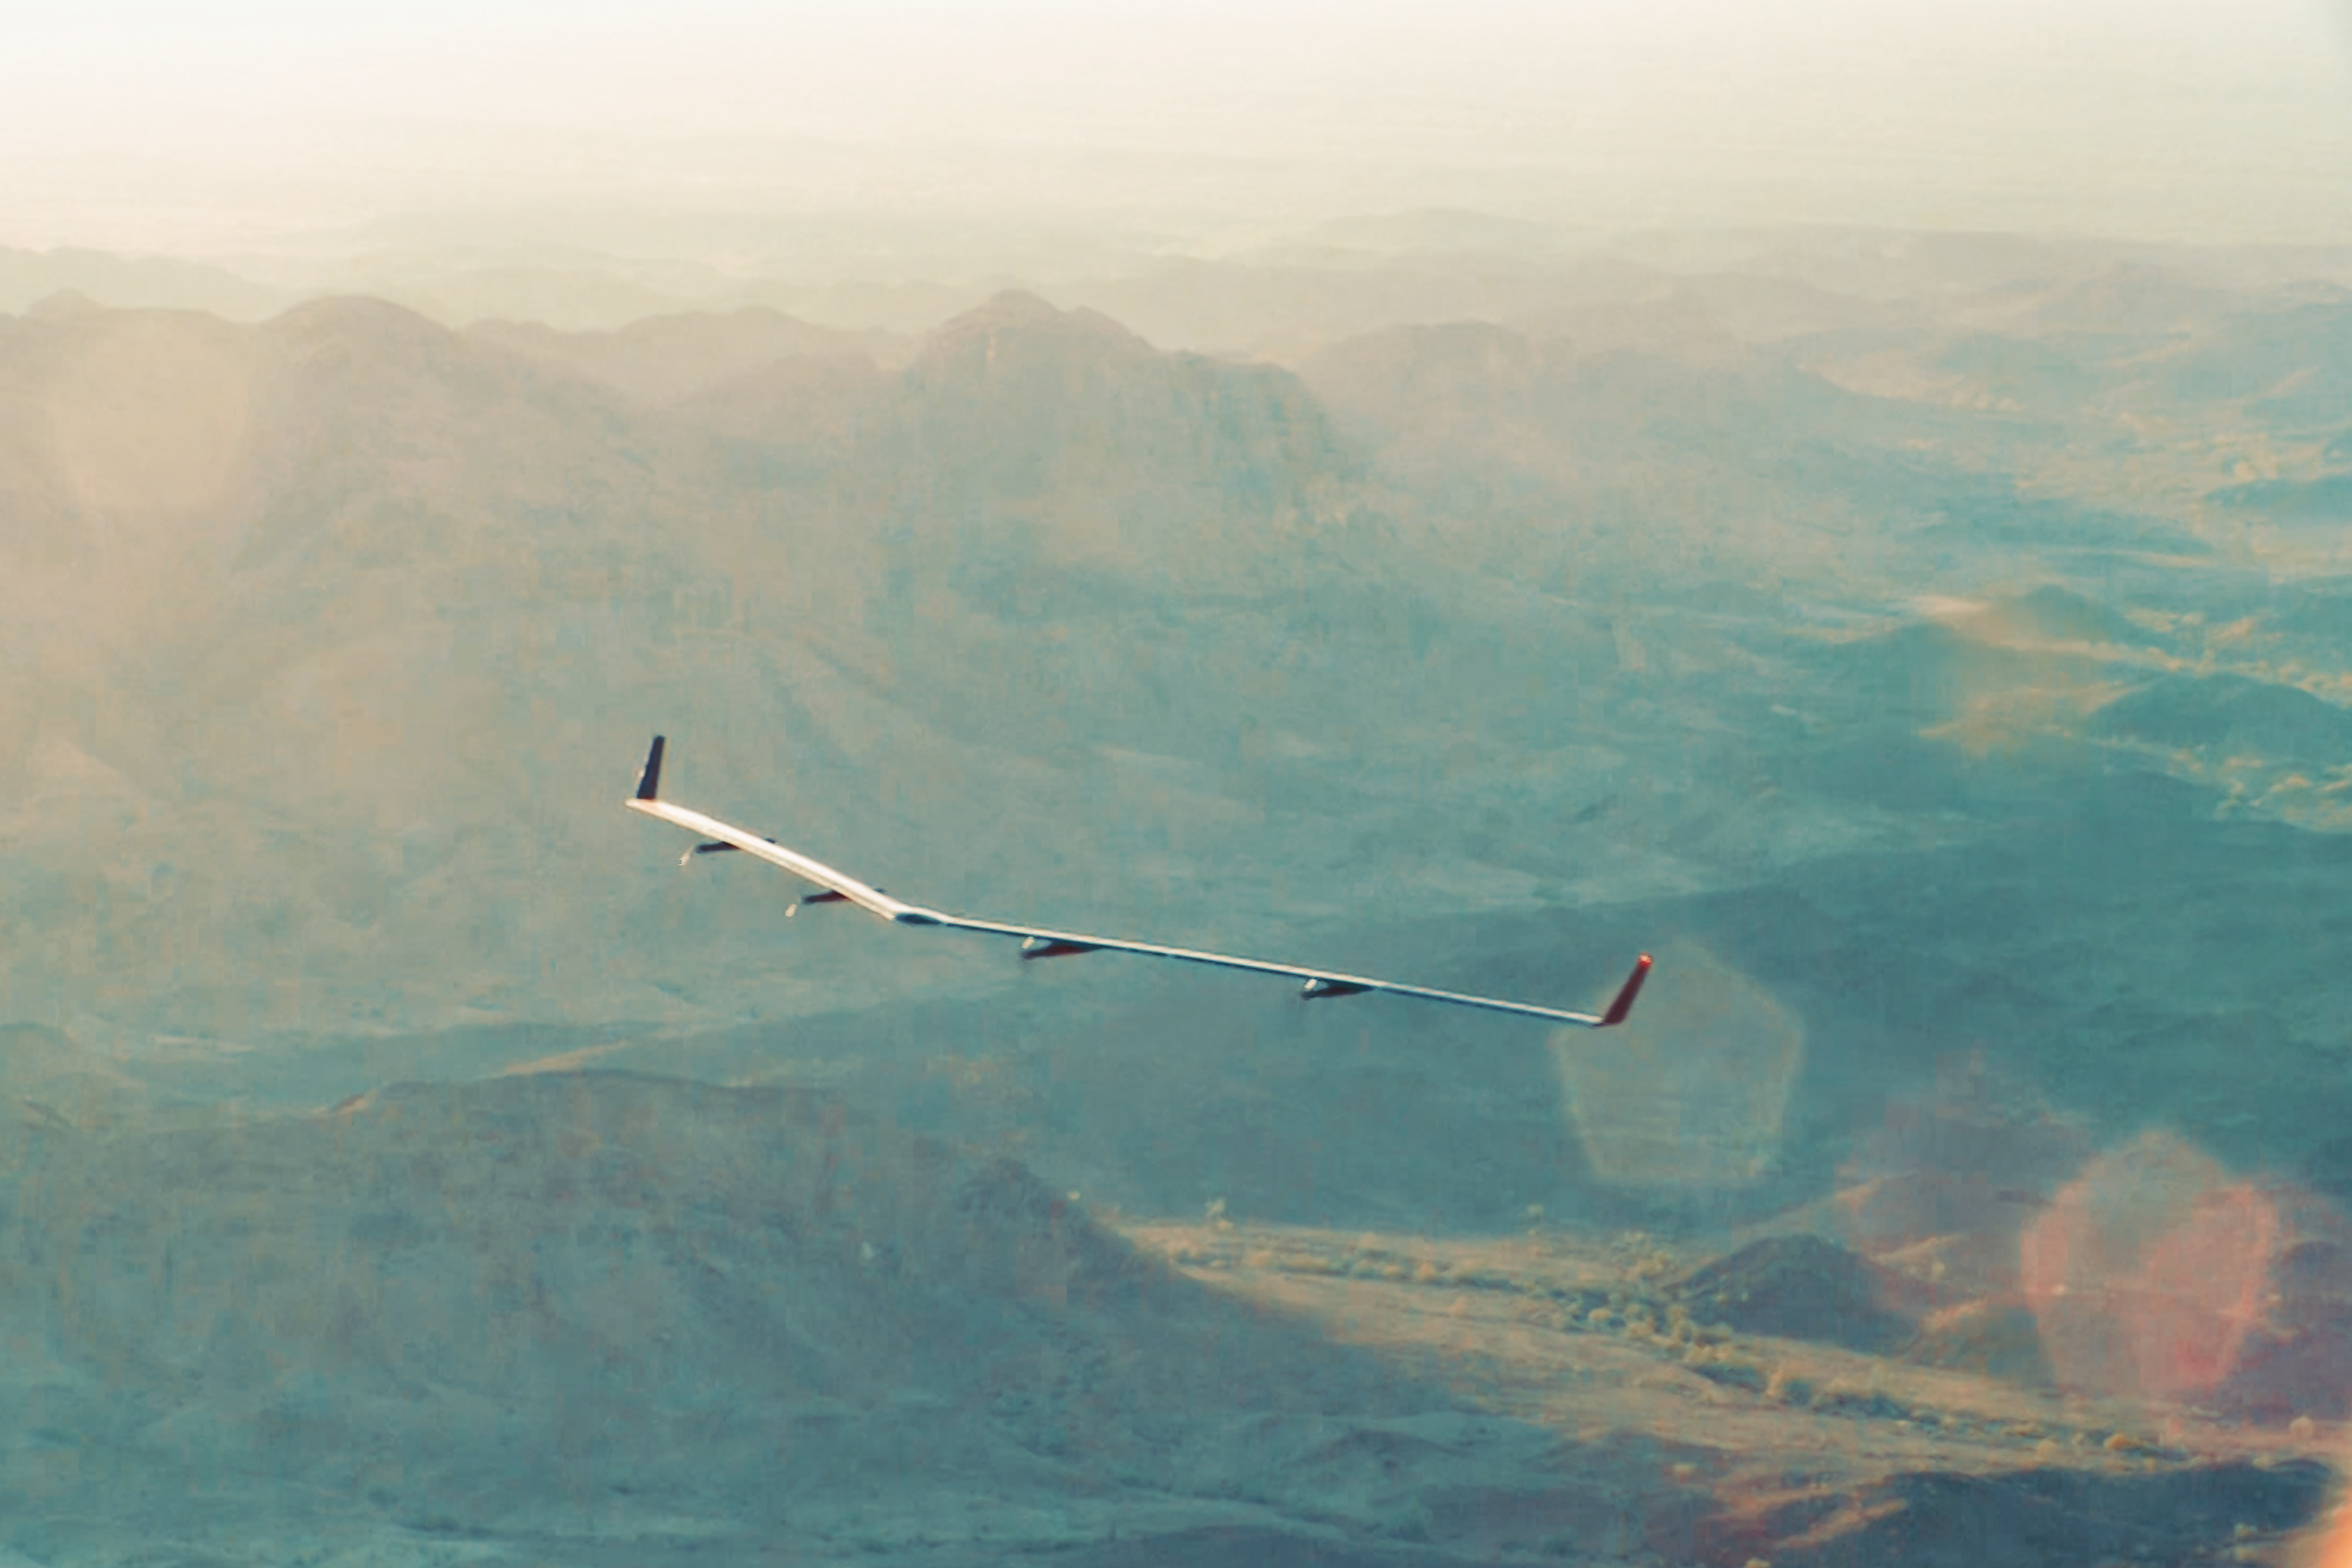 Facebook's Internet drone Aquila successfully completed the test, rises in the sky